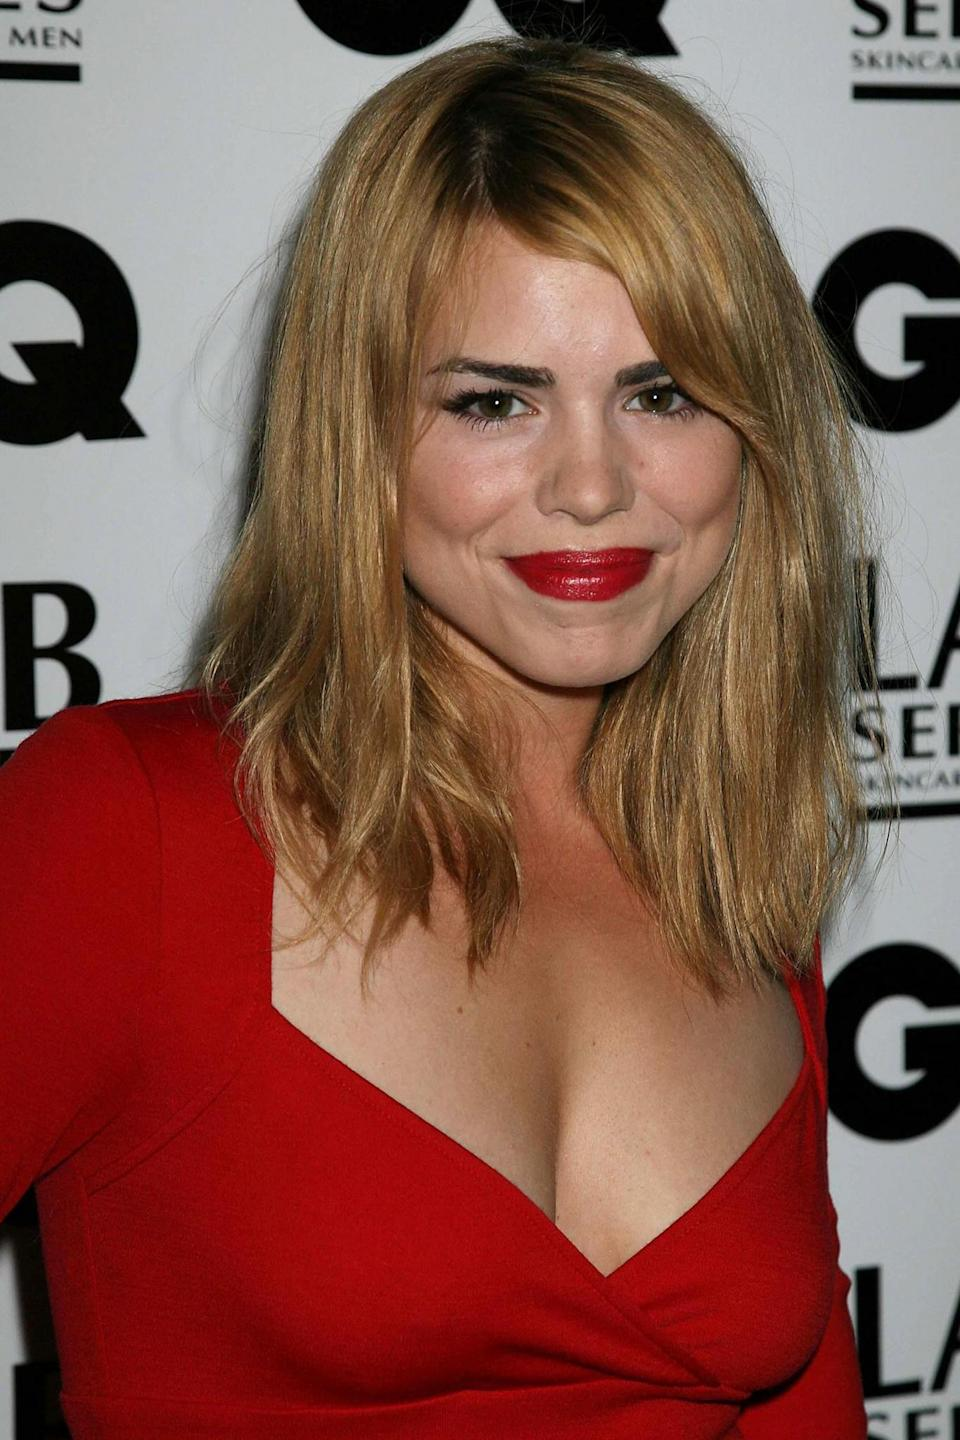 Billie Piper arrives for the GQ Men of the Year Awards 2006 at the Royal Opera House, Covent garden, central London. (Photo by Philip Allport - PA Images/PA Images via Getty Images)